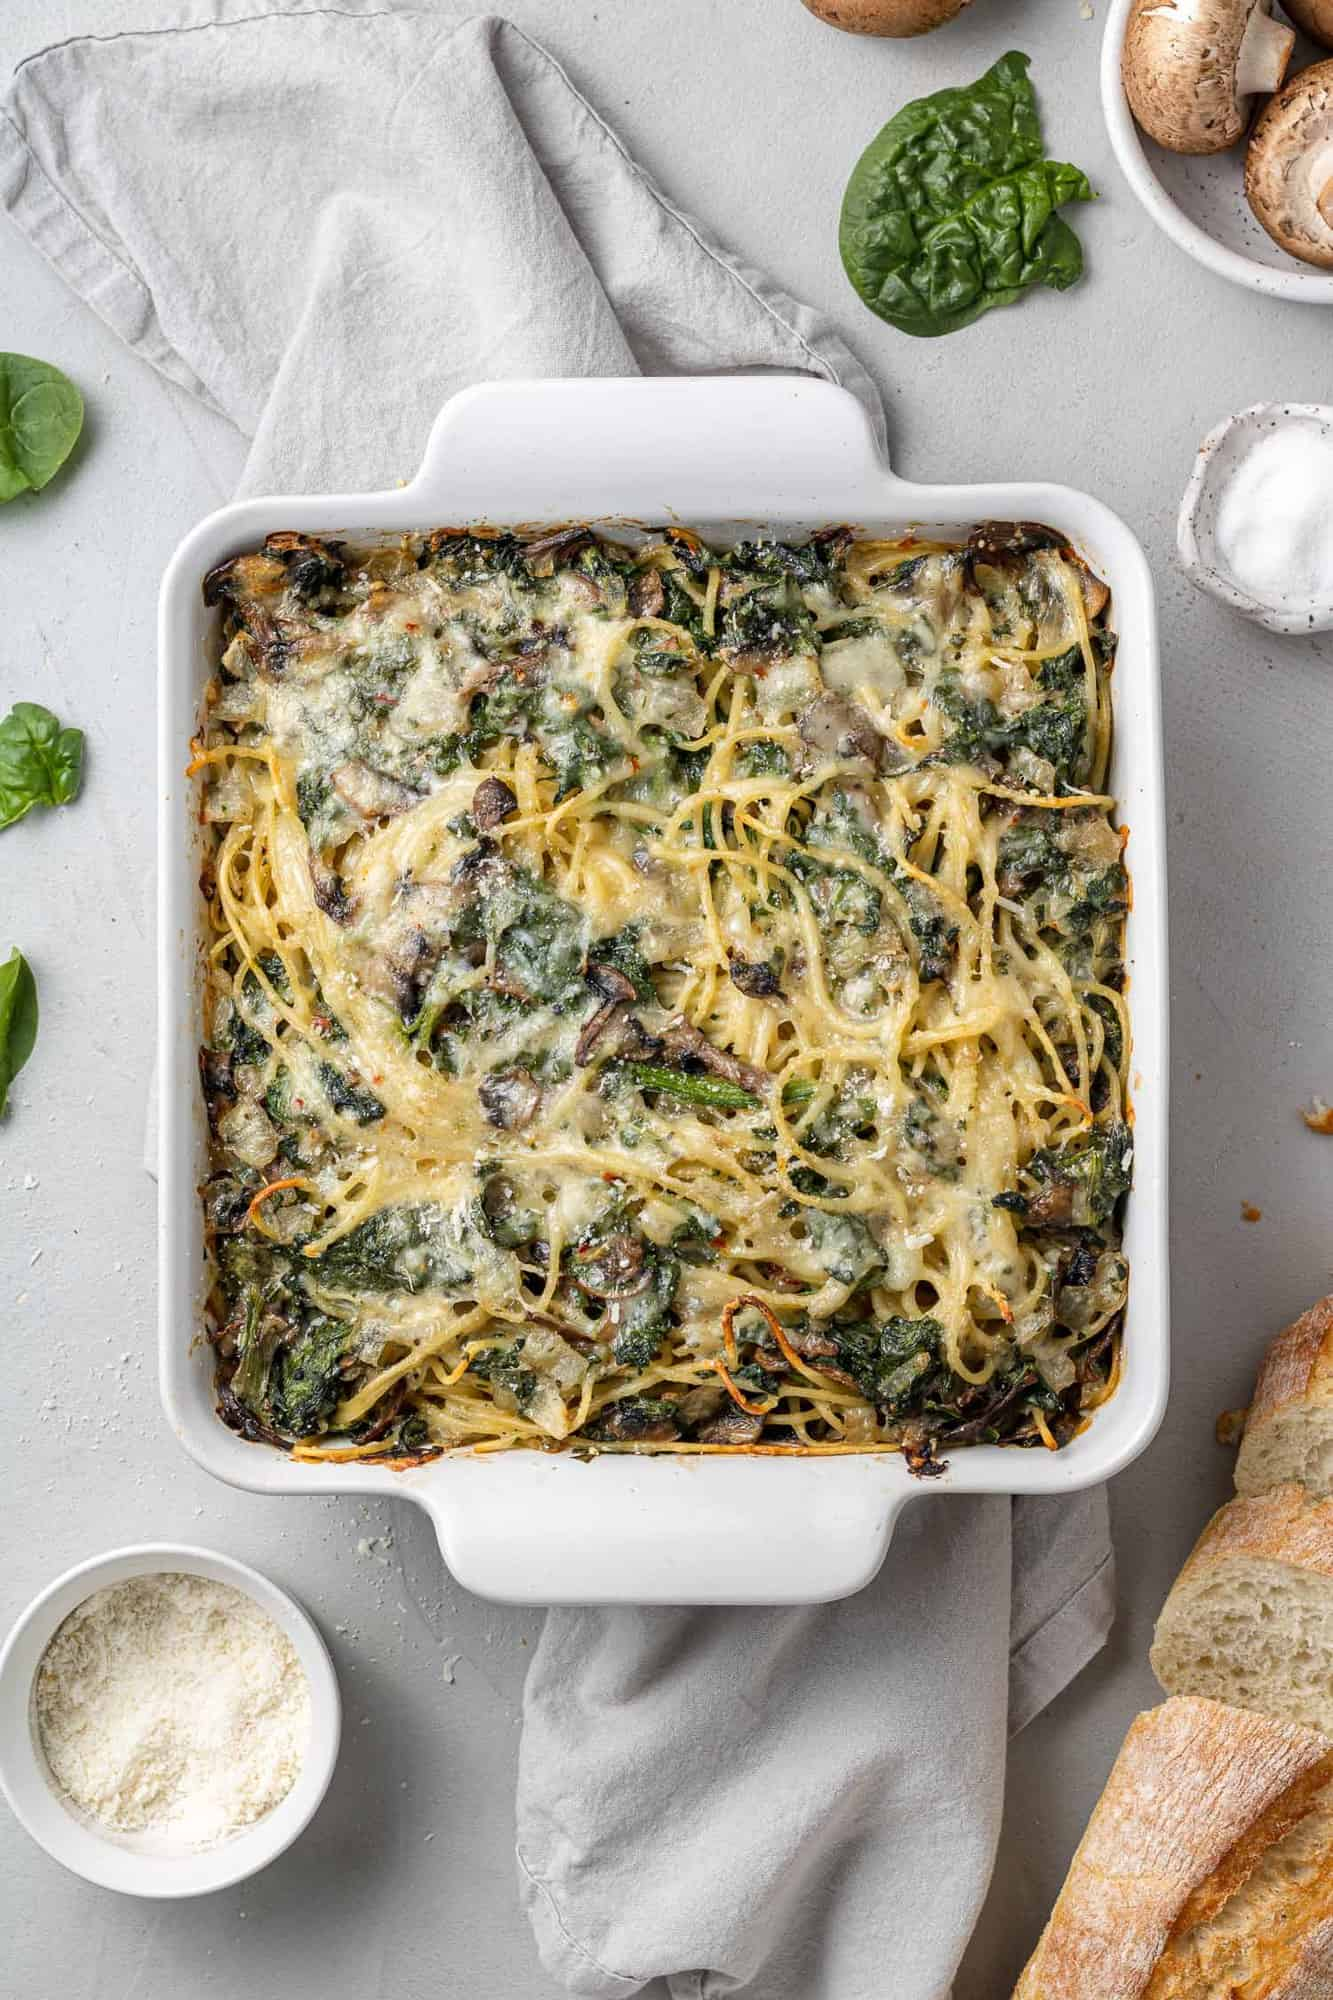 Baked spaghetti with spinach and mushrooms in a square white baking dish.